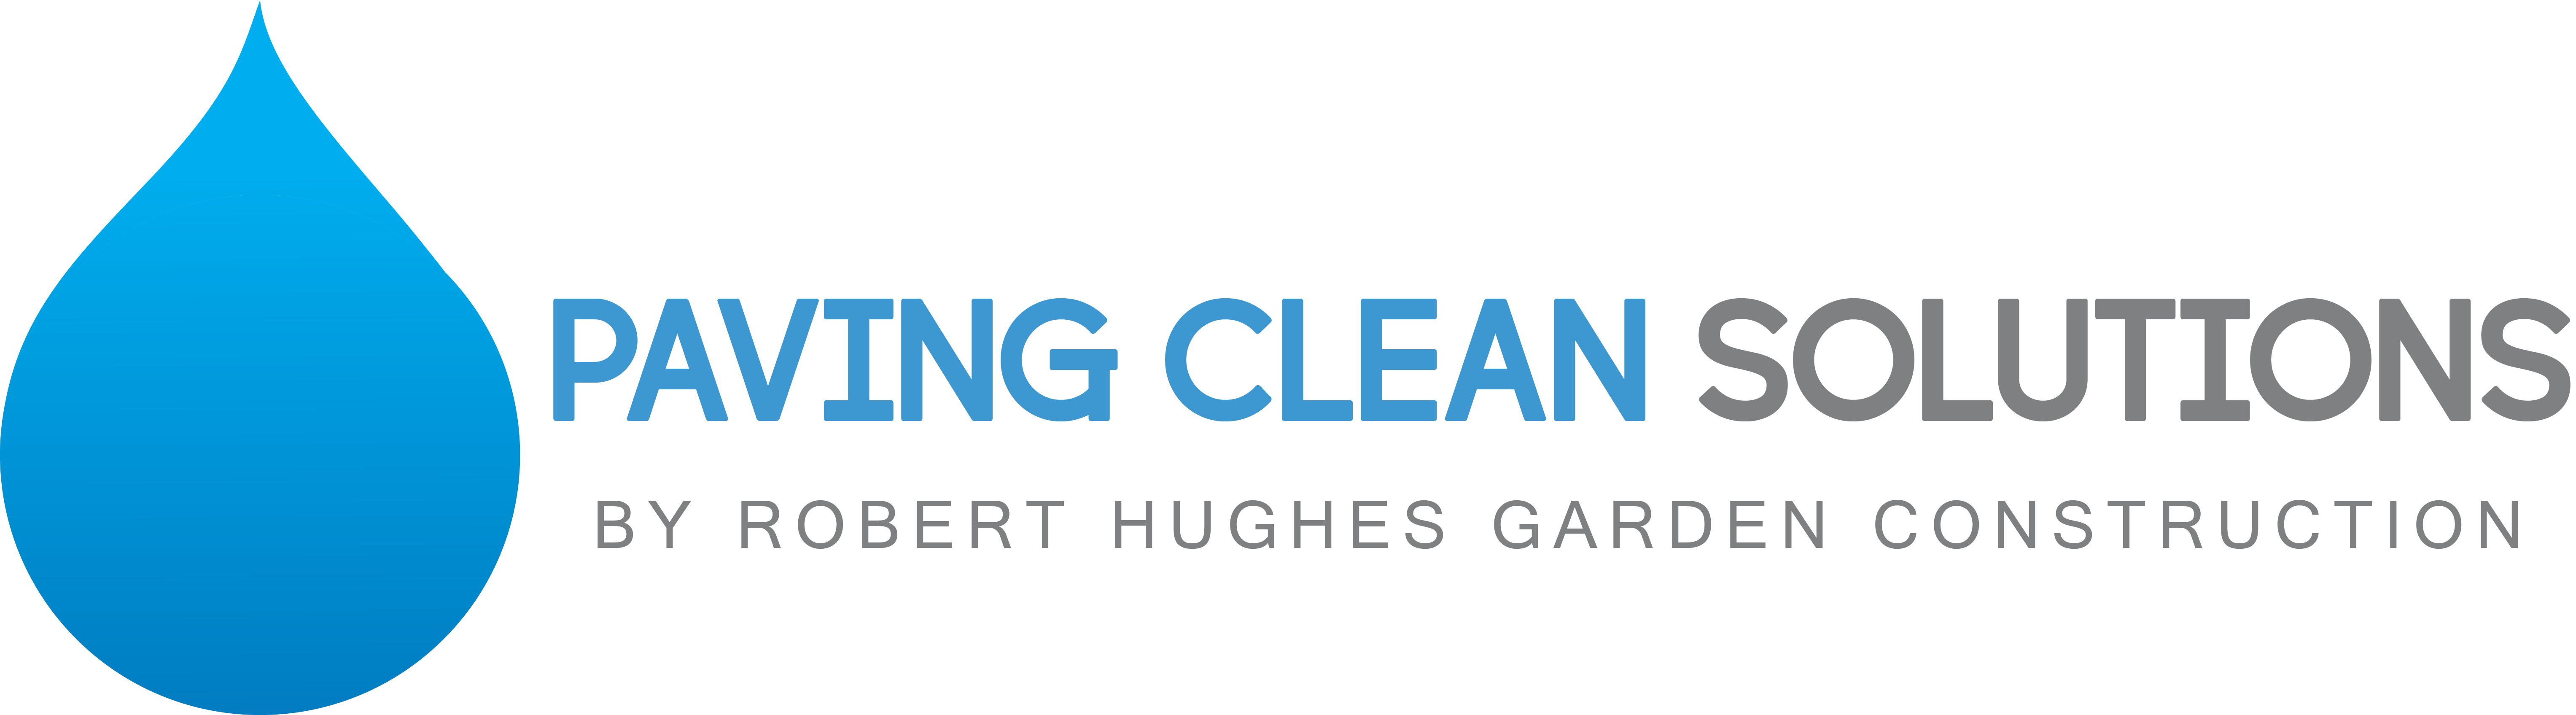 Paving Clean Solutions